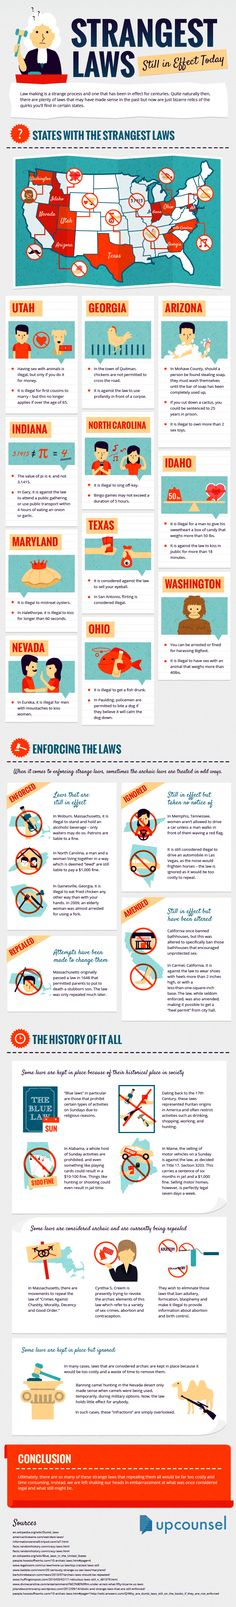 Image: http://blog.upcounsel.com/wp-content/uploads/2013/10/strangest-laws-still-in-effect-today-infographic.png